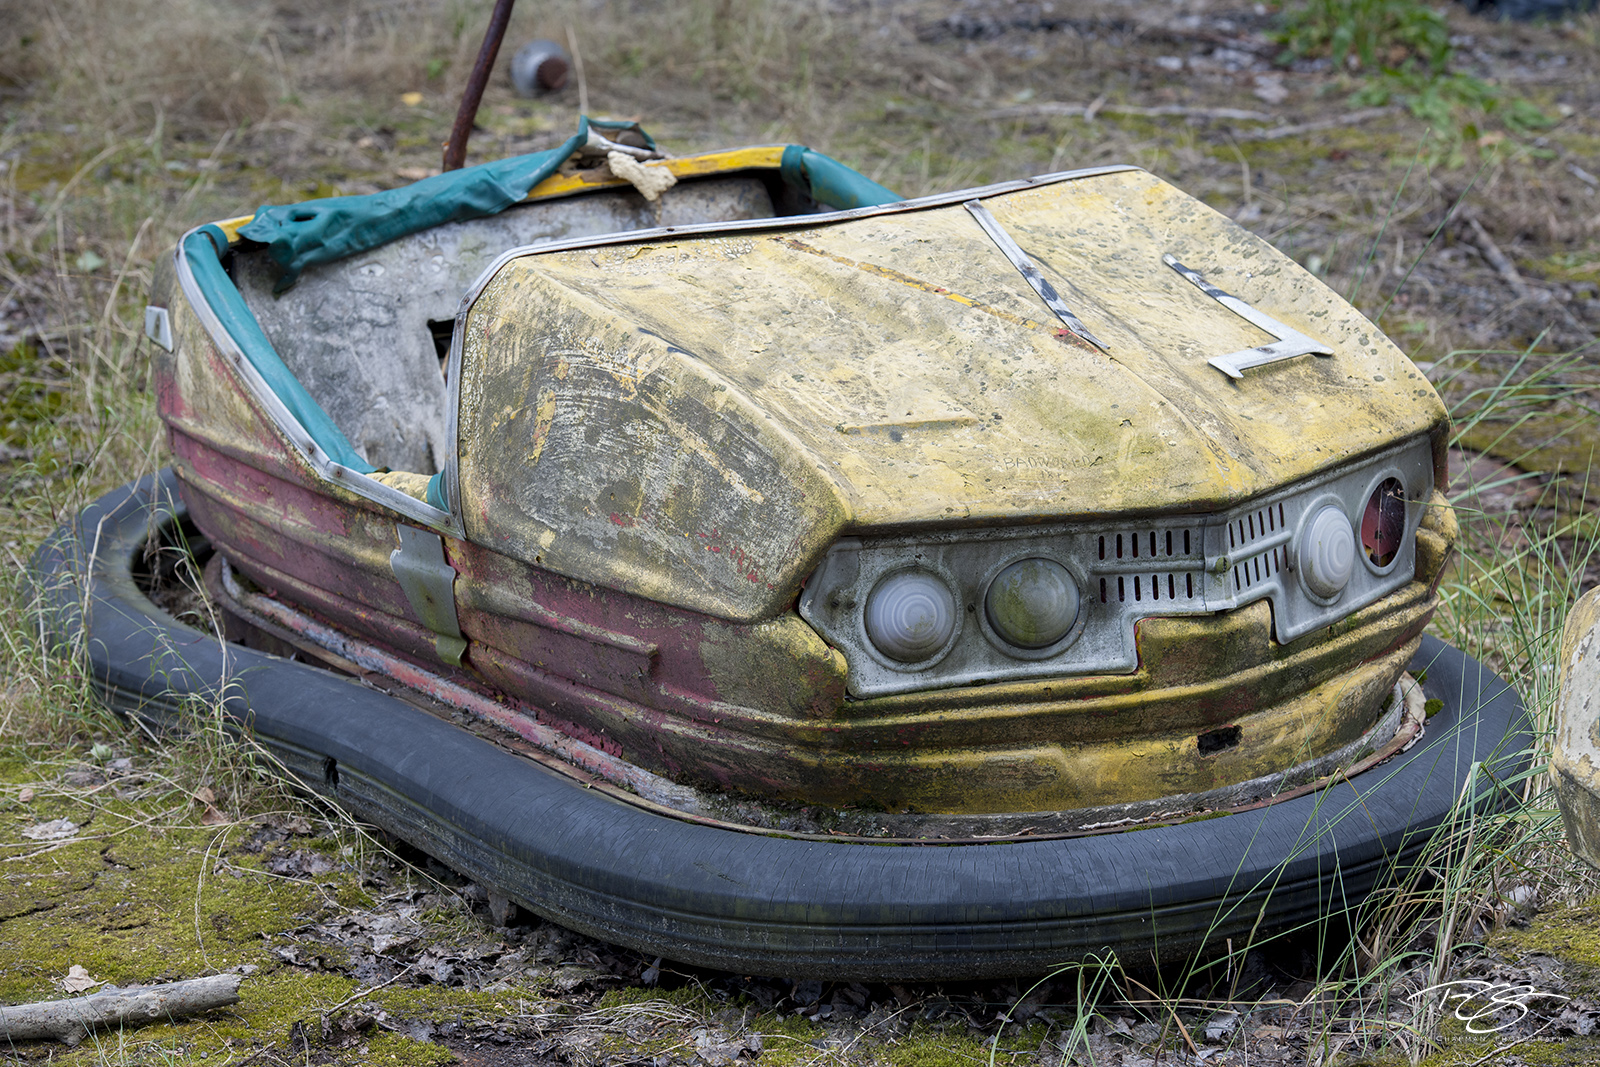 chernobyl, chornobyl, pripyat, exclusion zone, abandoned, forgotten, wasteland, radioactive, decay, peeling paint, moss, reclamation, bumper car, dodgem, amusement park, dodge em, yellow, fair, state , photo